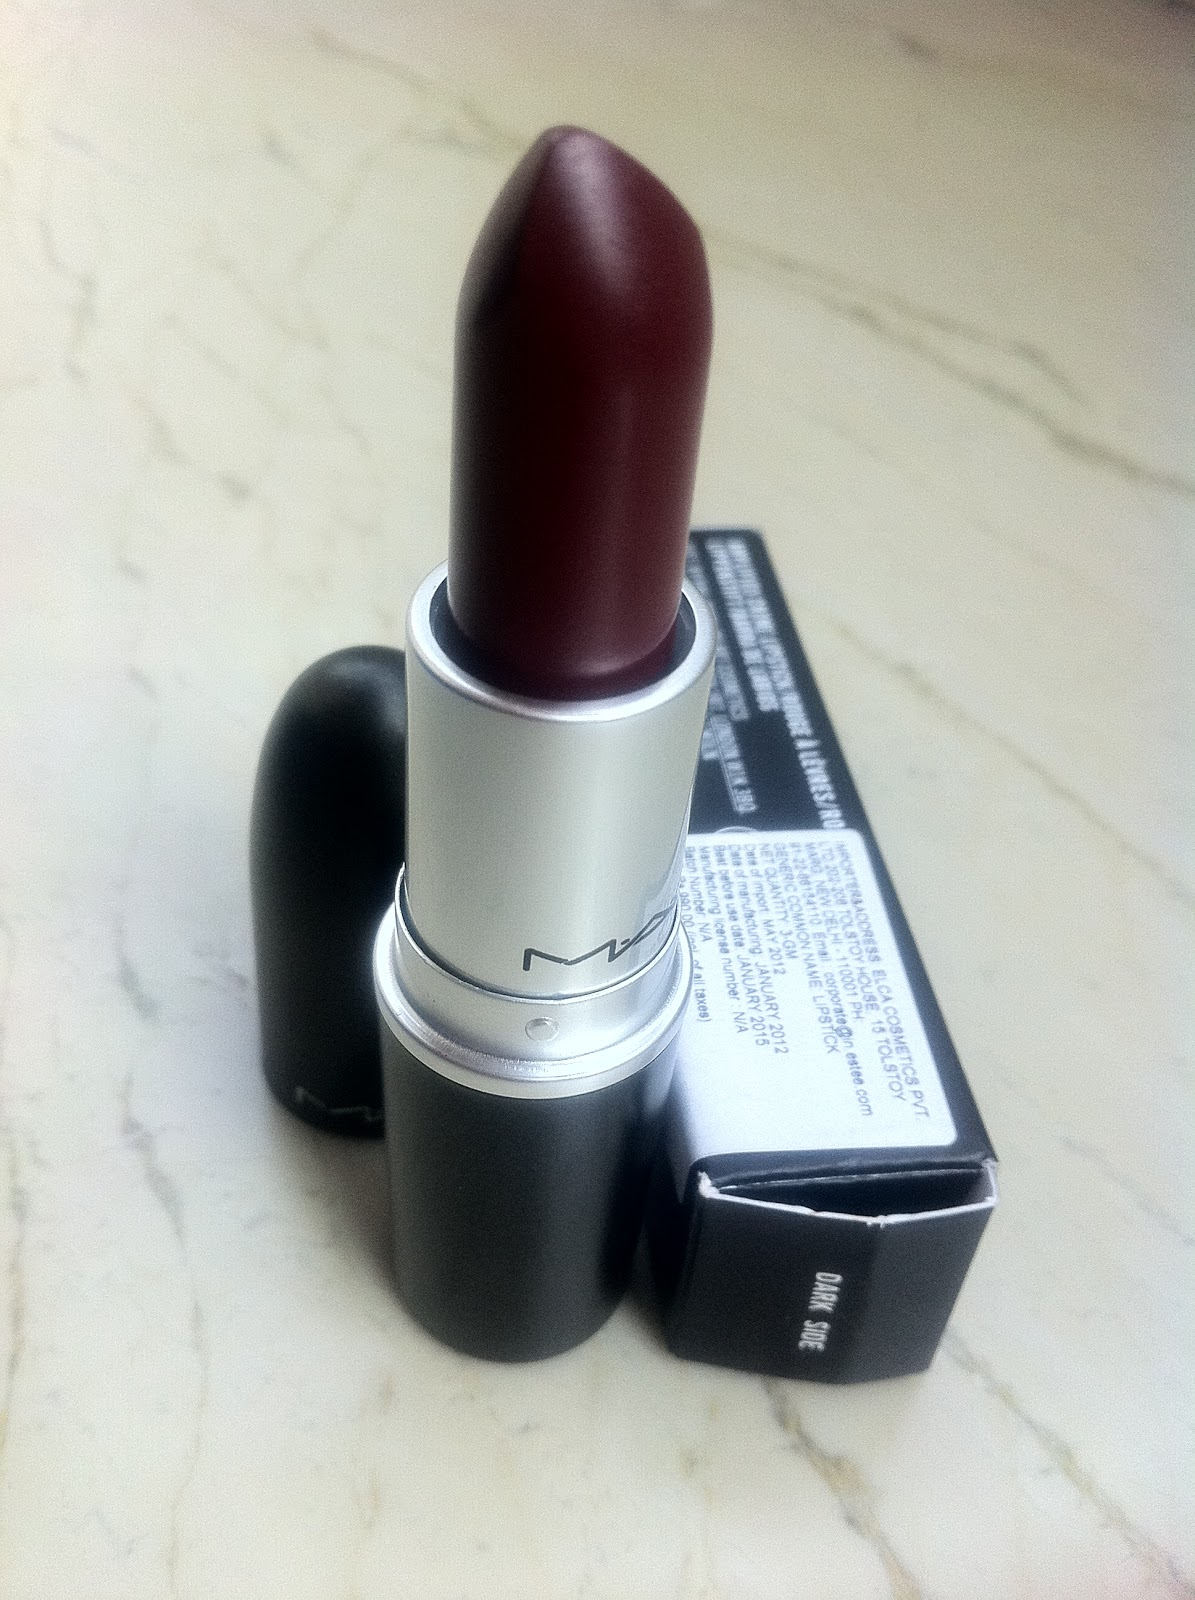 MAC Amplified Creme Lipstick Dark Side - Review, Photos ...